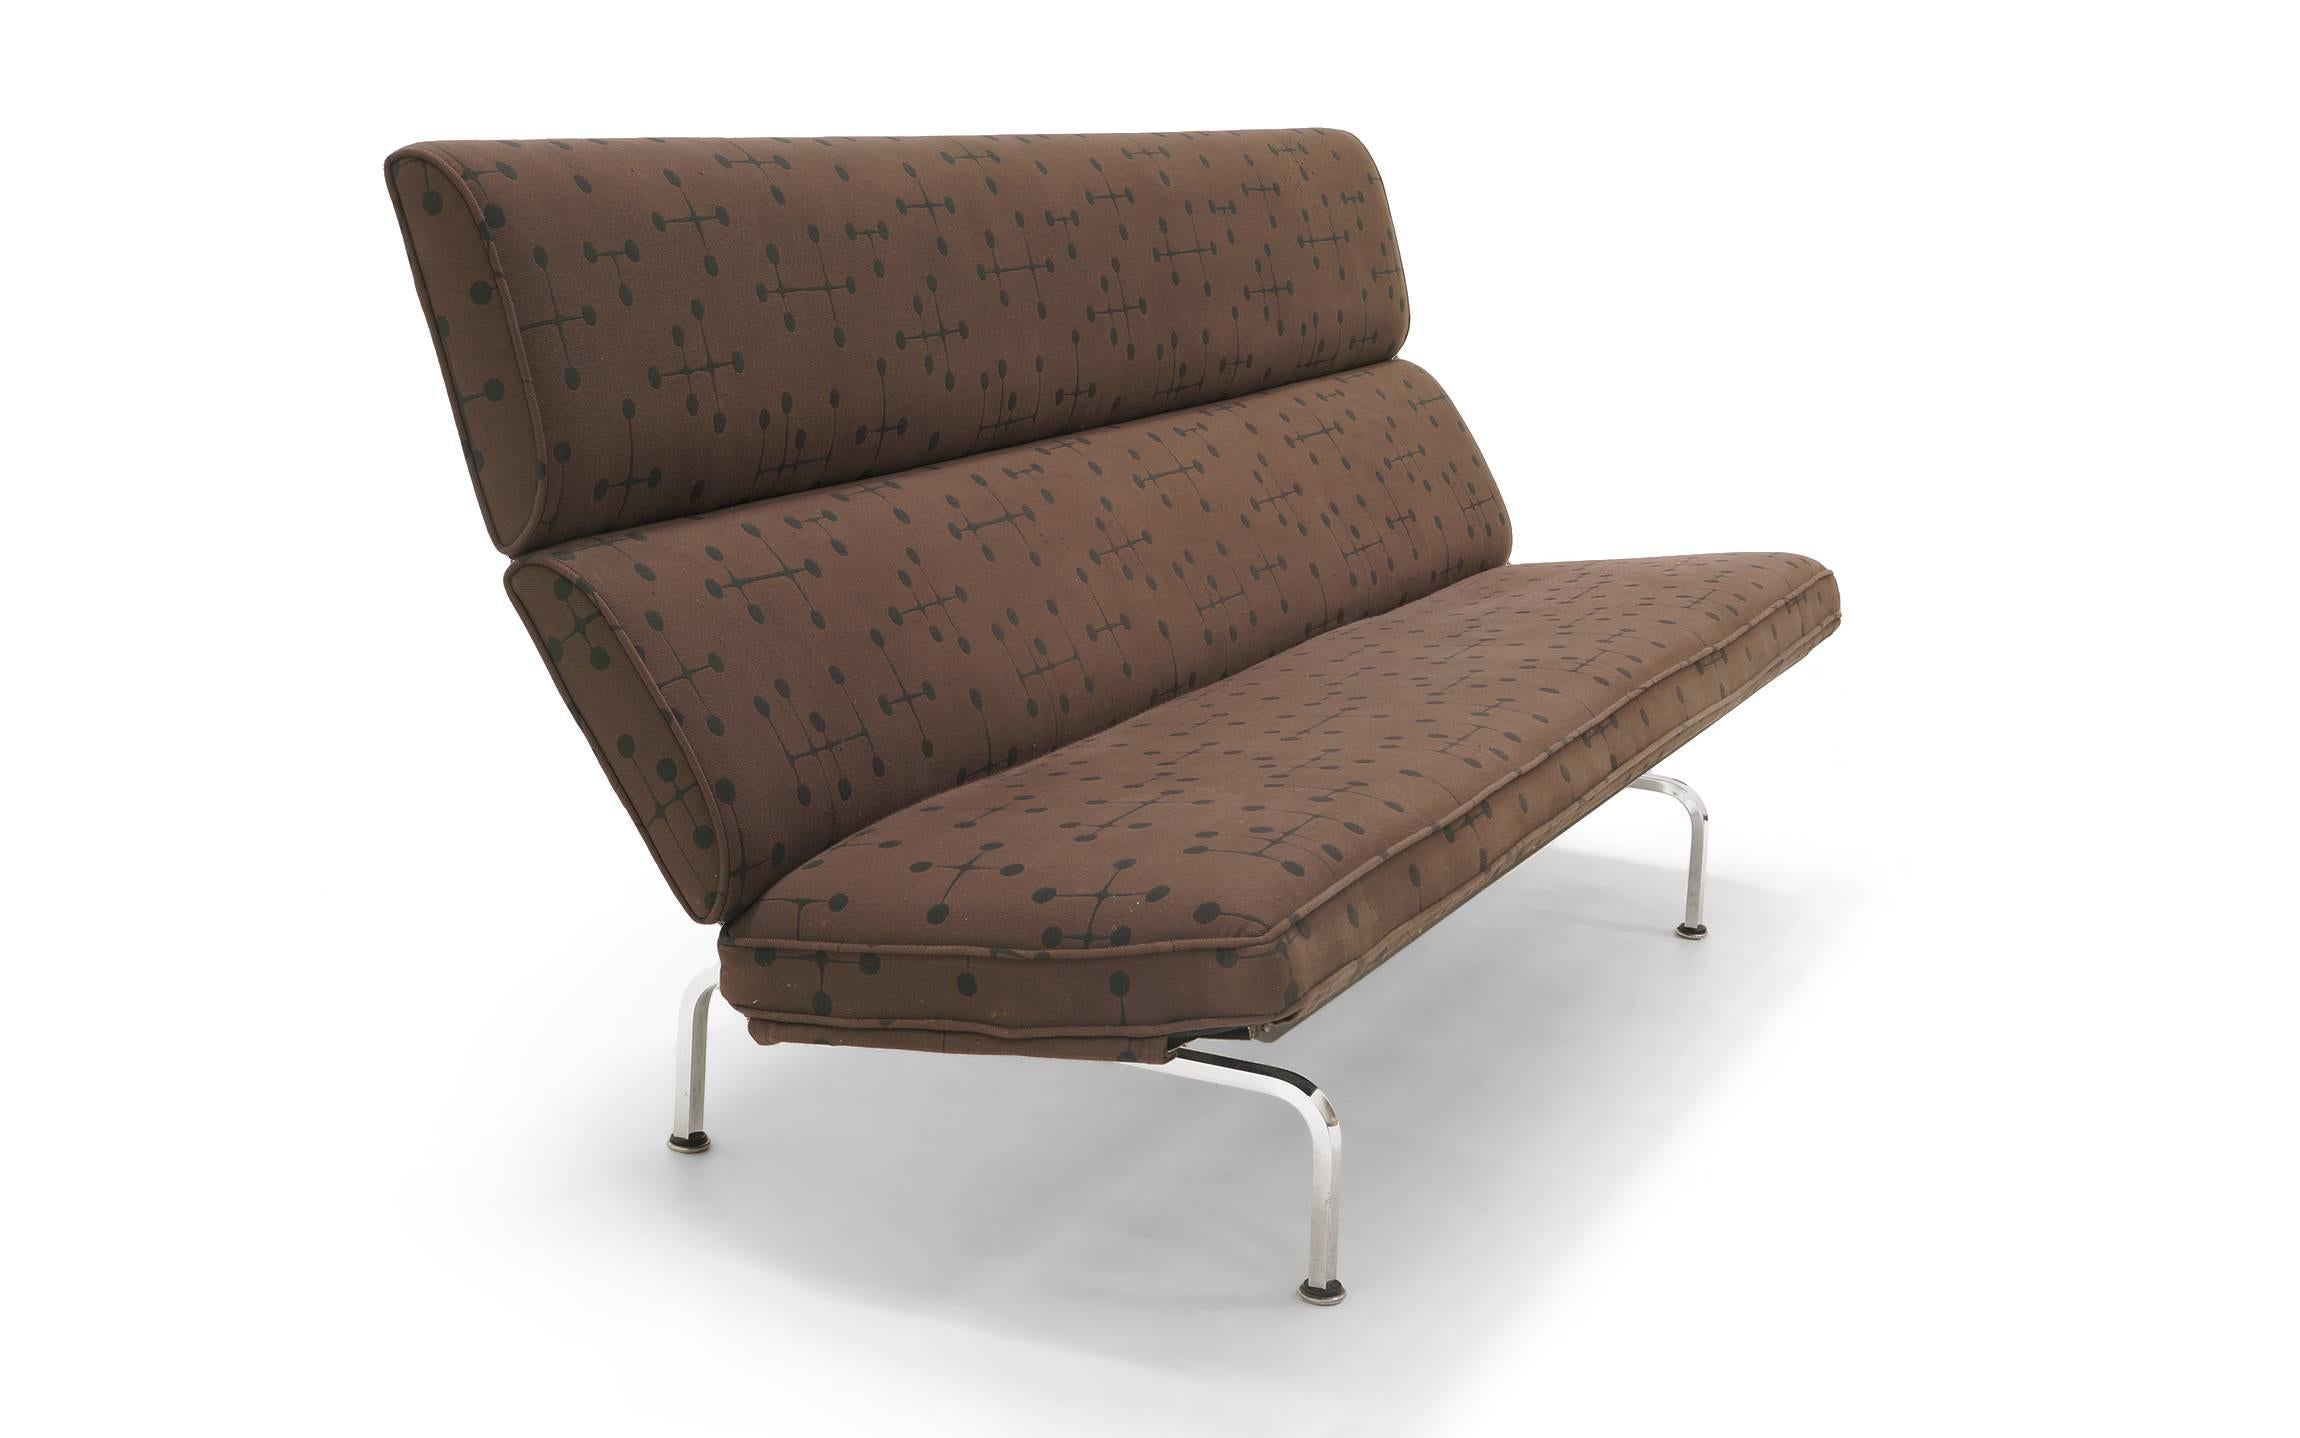 Early Charles And Ray Eames Sofa Compact For Herman Miller In Eames Dot  Pattern Fabric By